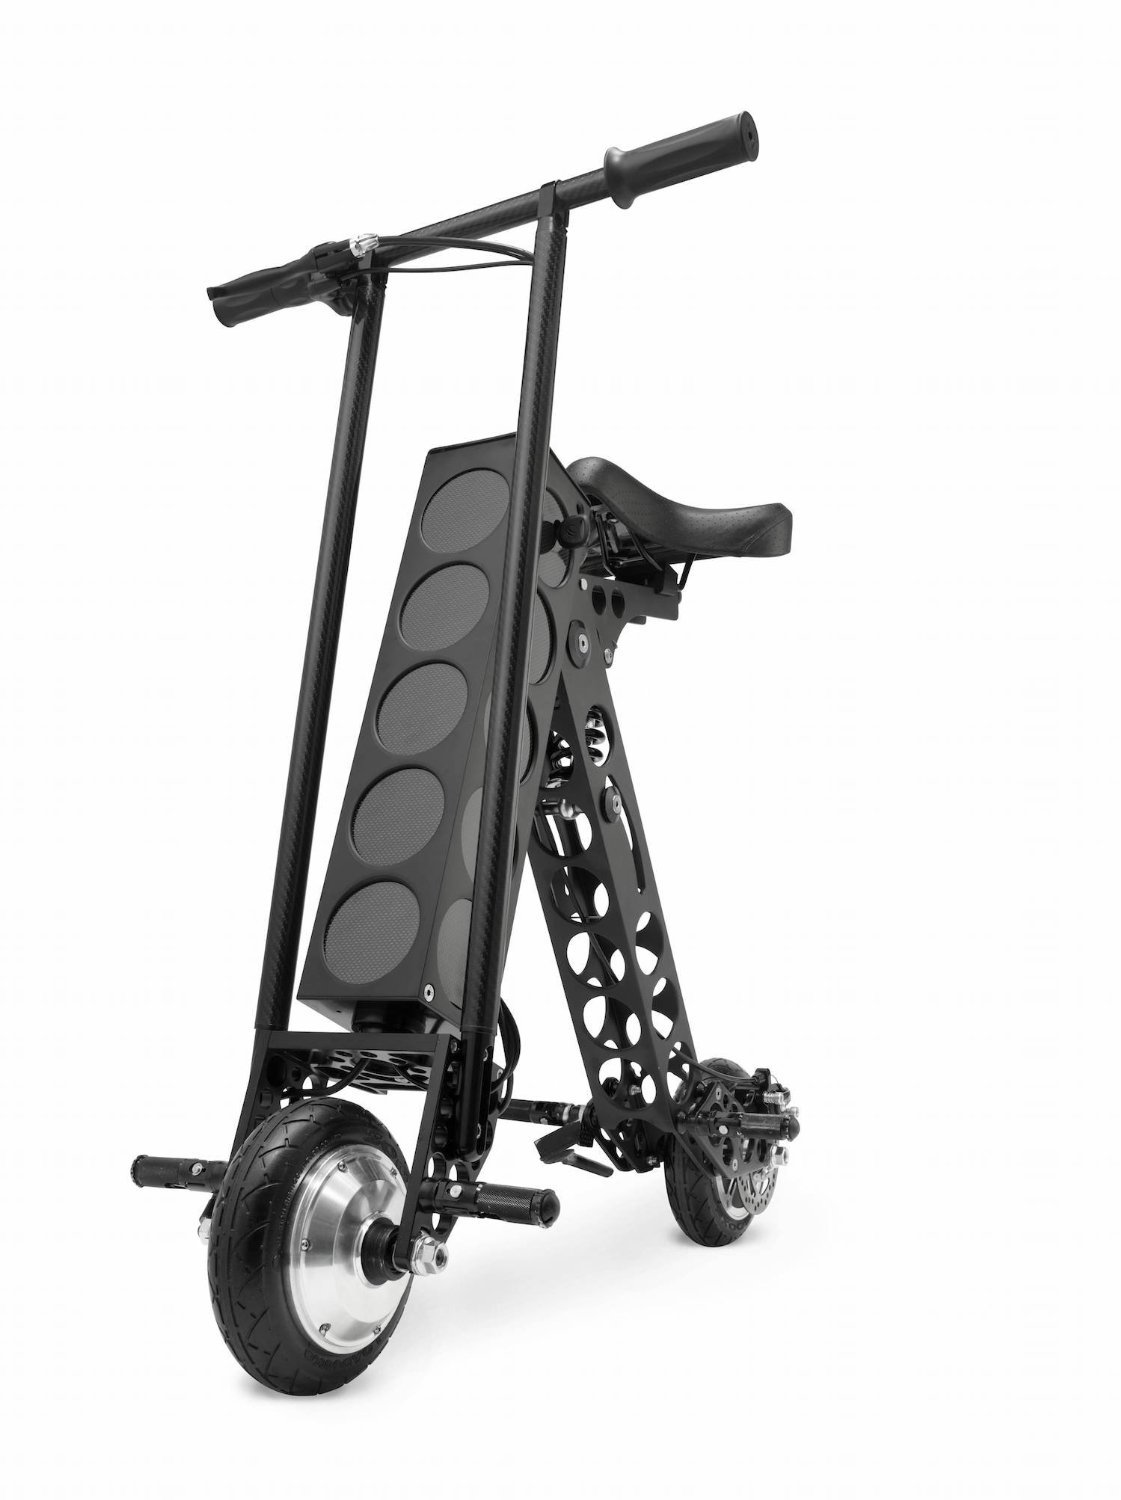 Amazon Startups Product - URB-E Black Label Electric Folding Scooter